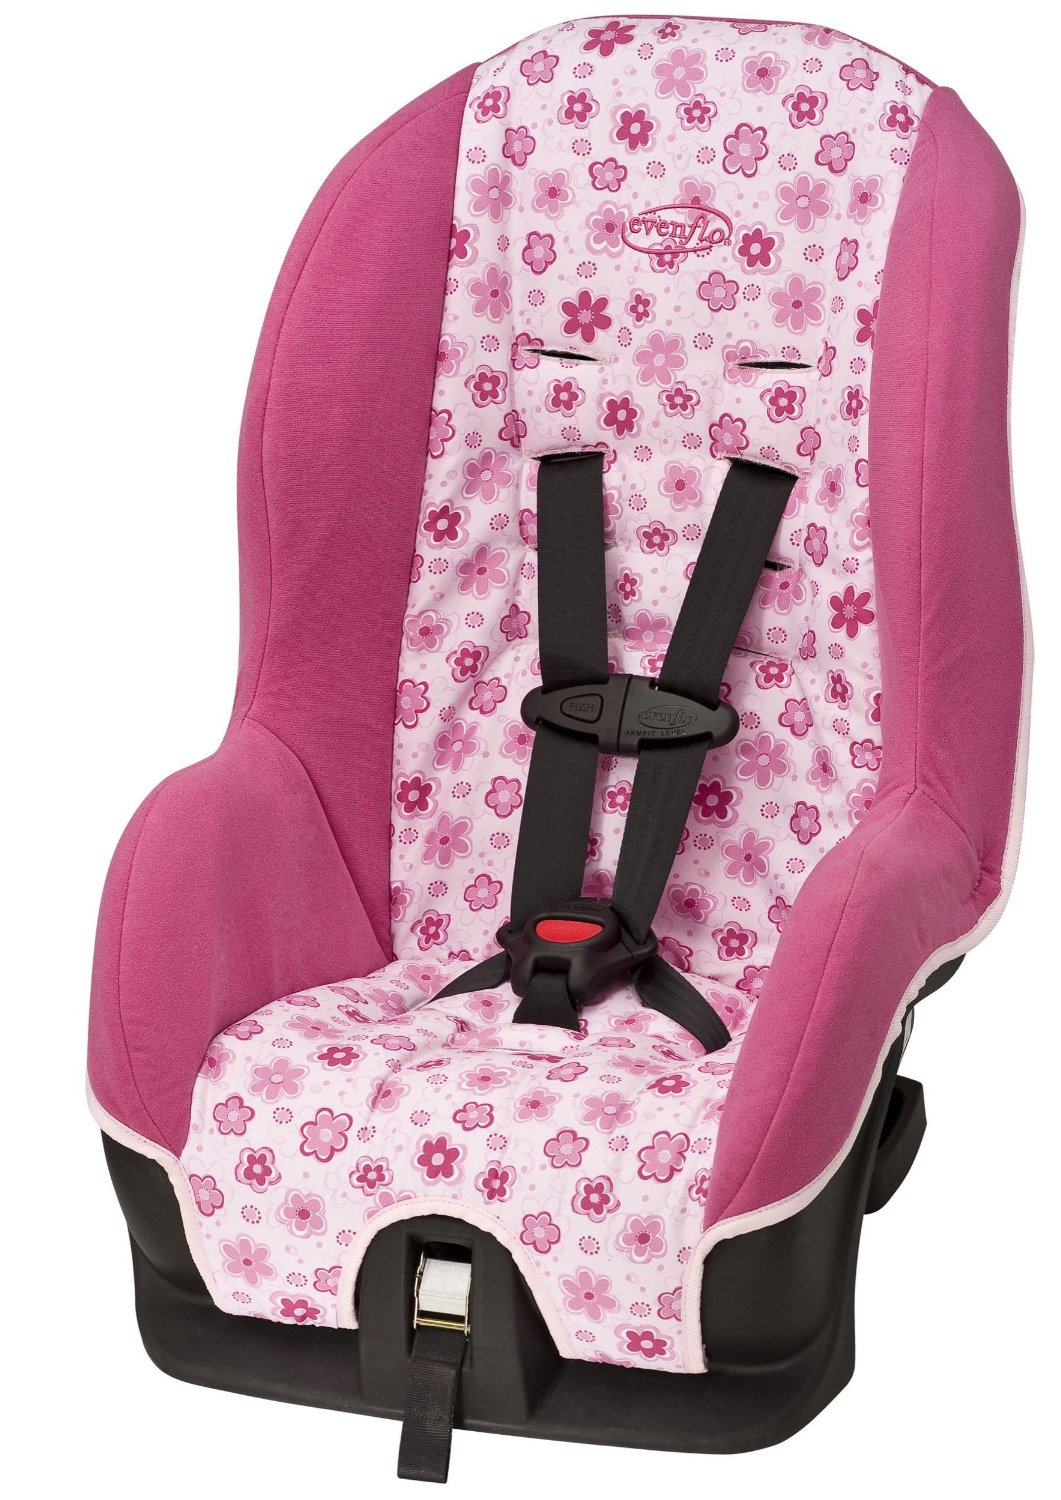 Highly Rated Evenflo Tribute Sport Convertible Car Seat in Daisy ...